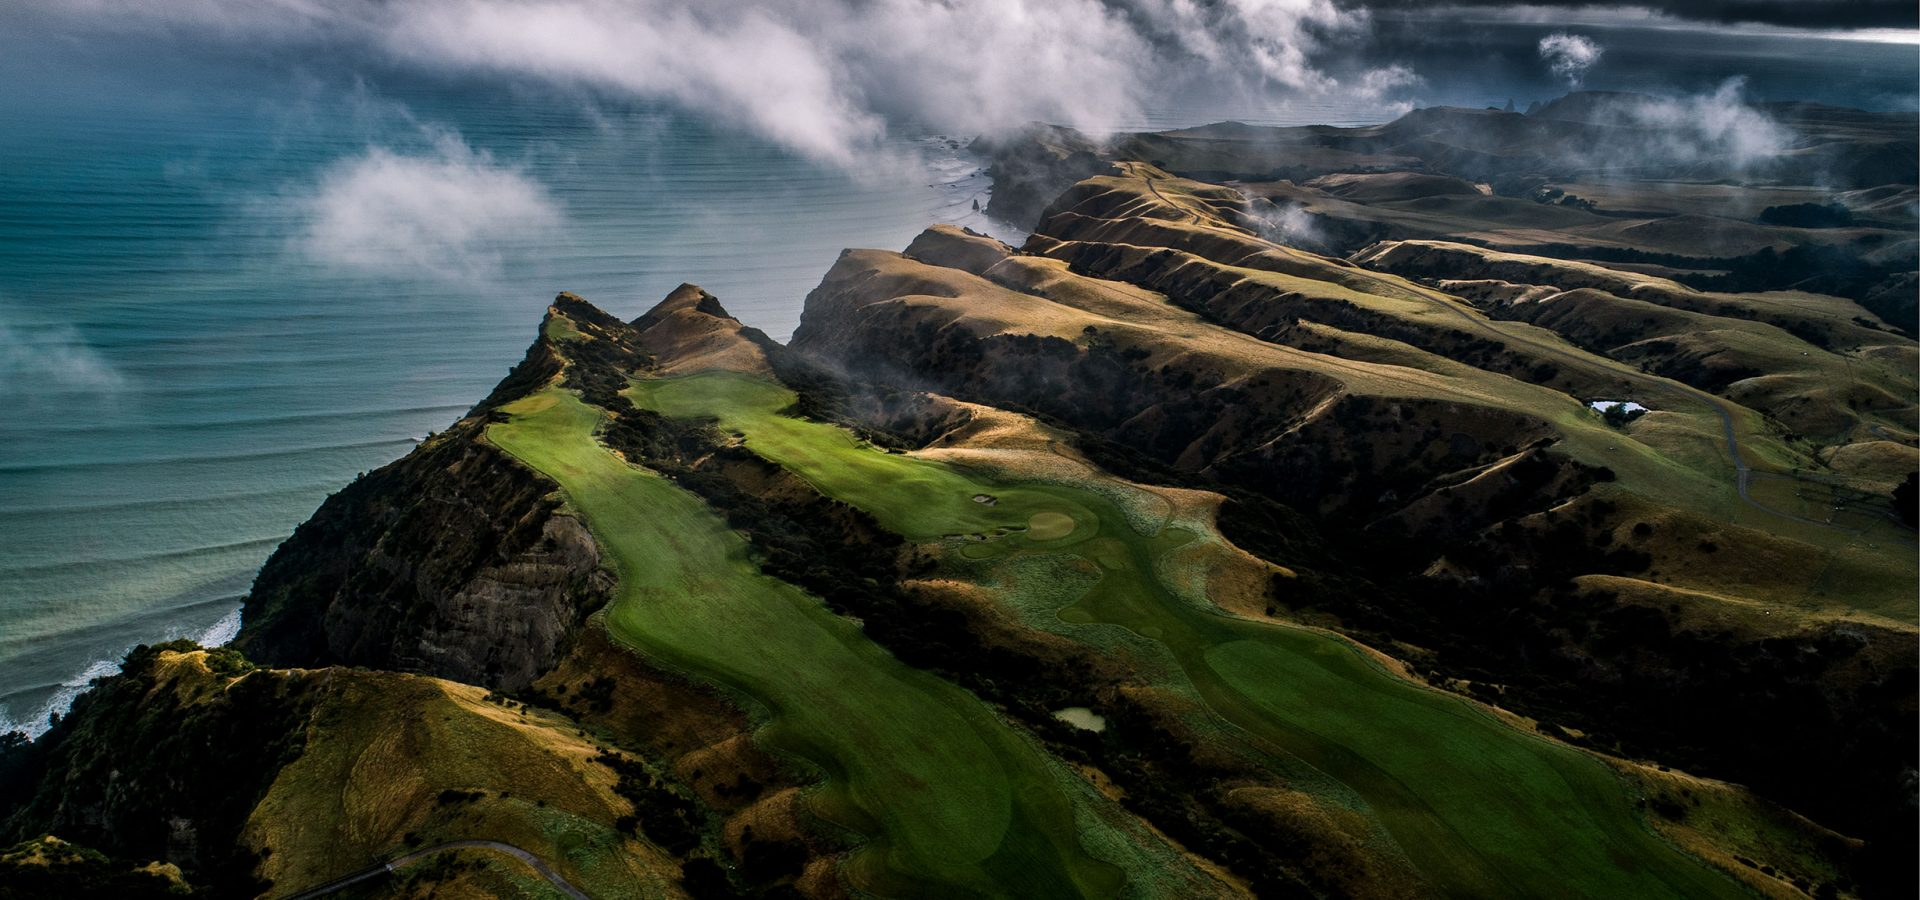 The Golfer's Journal - Cape Kidnappers